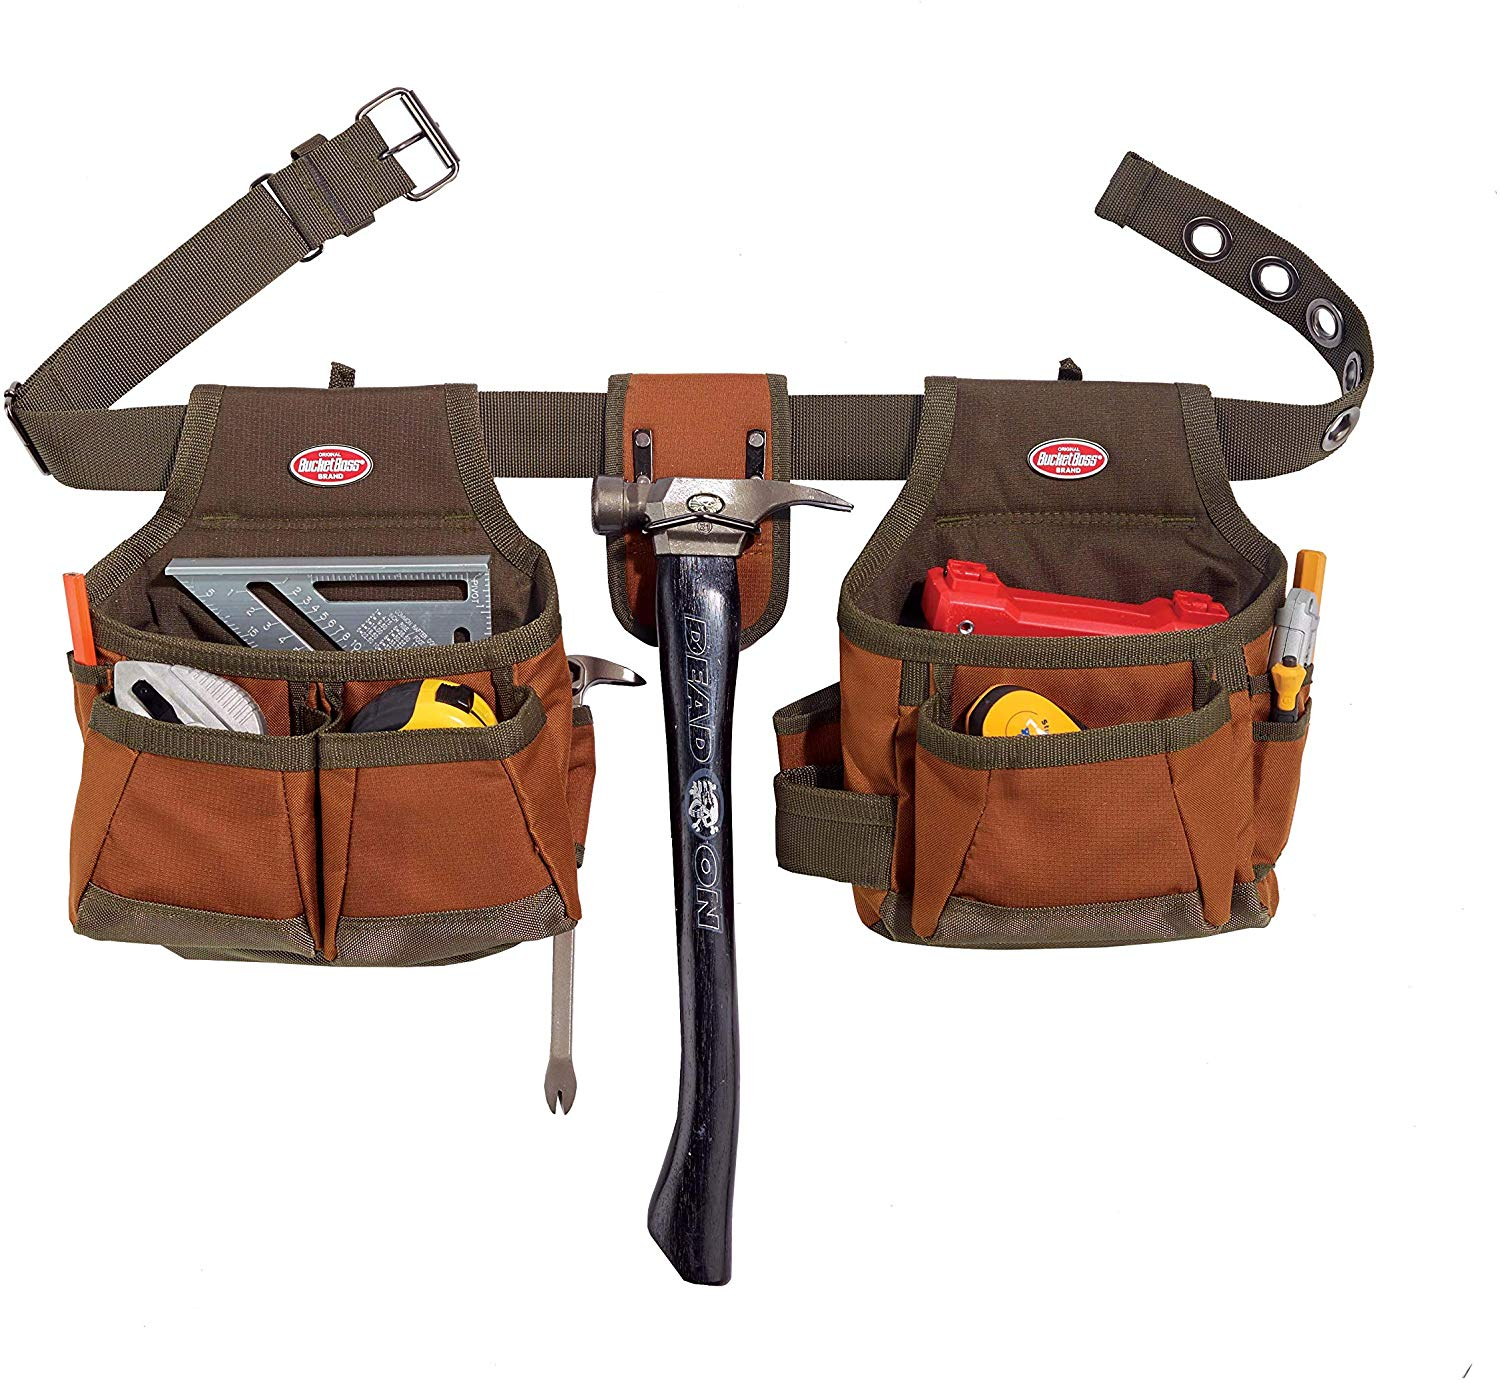 11 Best Tool Belts on The Market (2019)